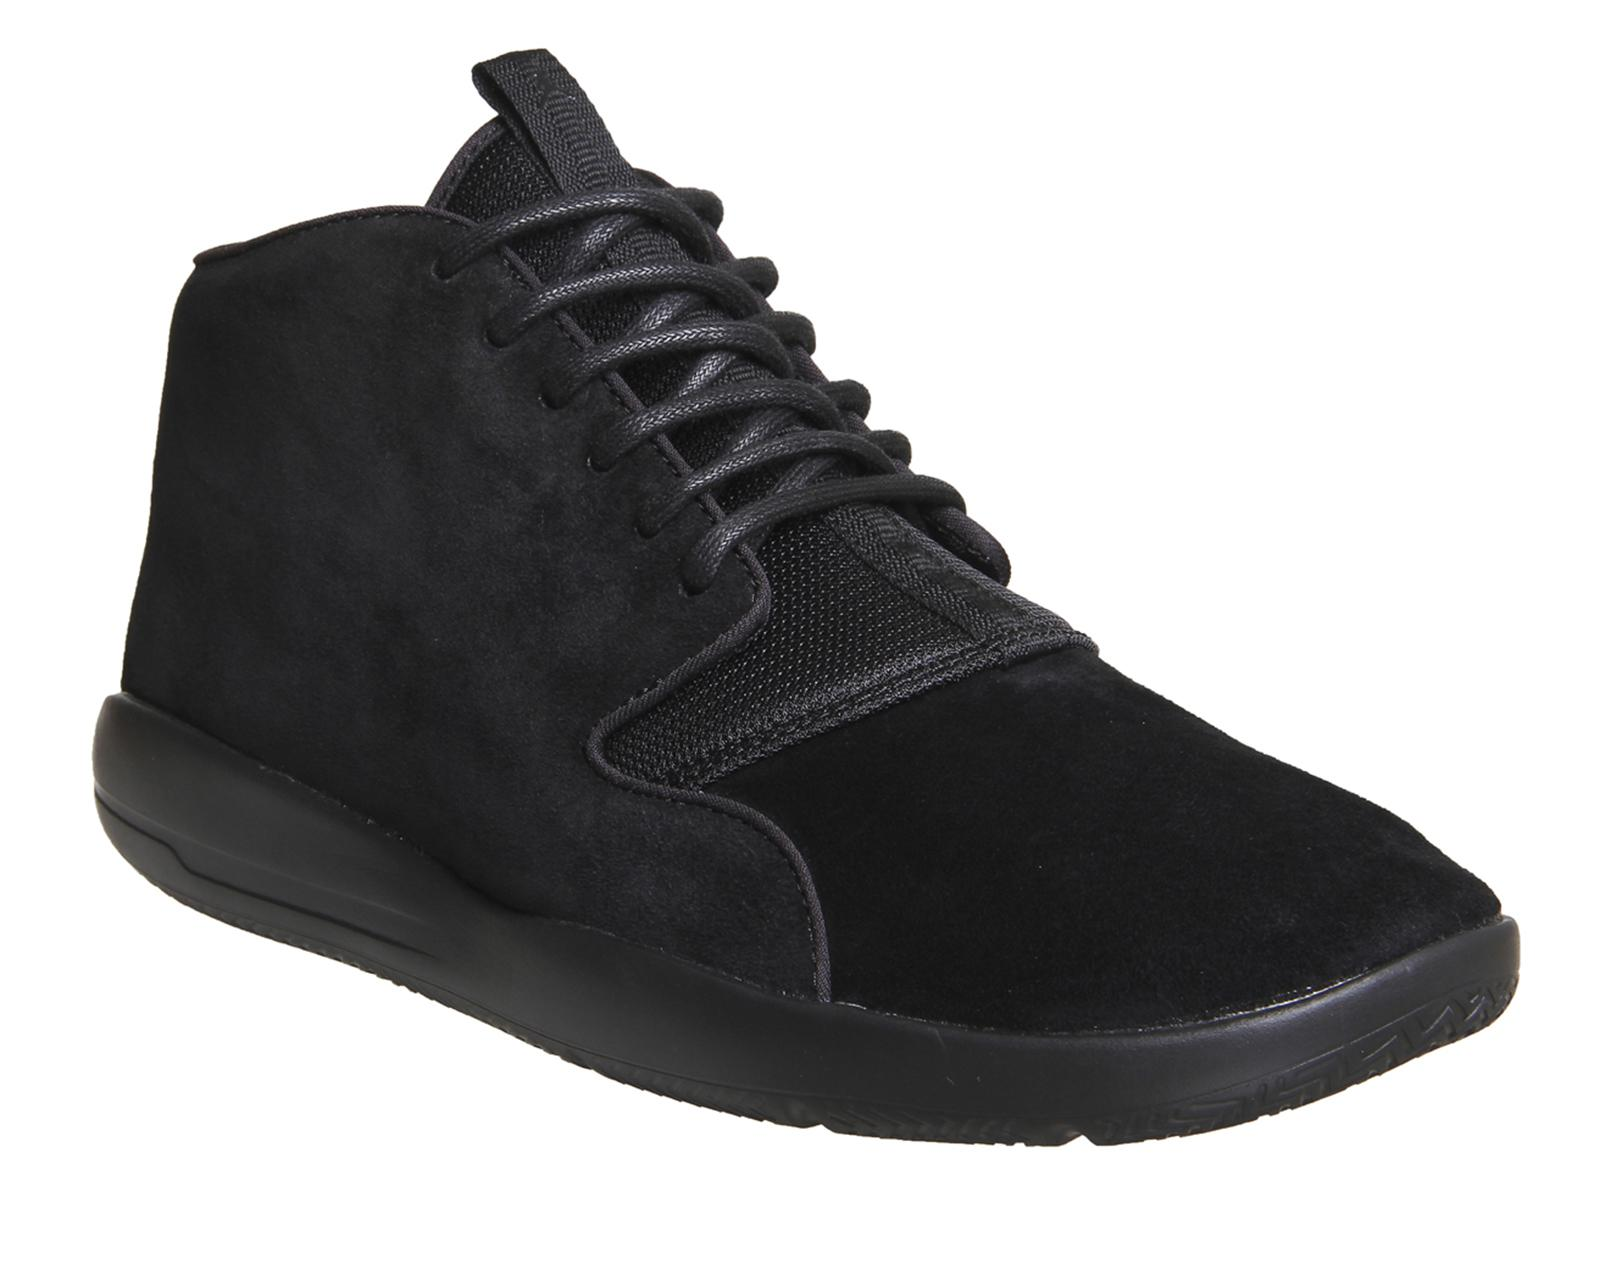 7acde7082019 Nike Jordan Eclipse Chukka Lea Trainers in Black for Men - Lyst